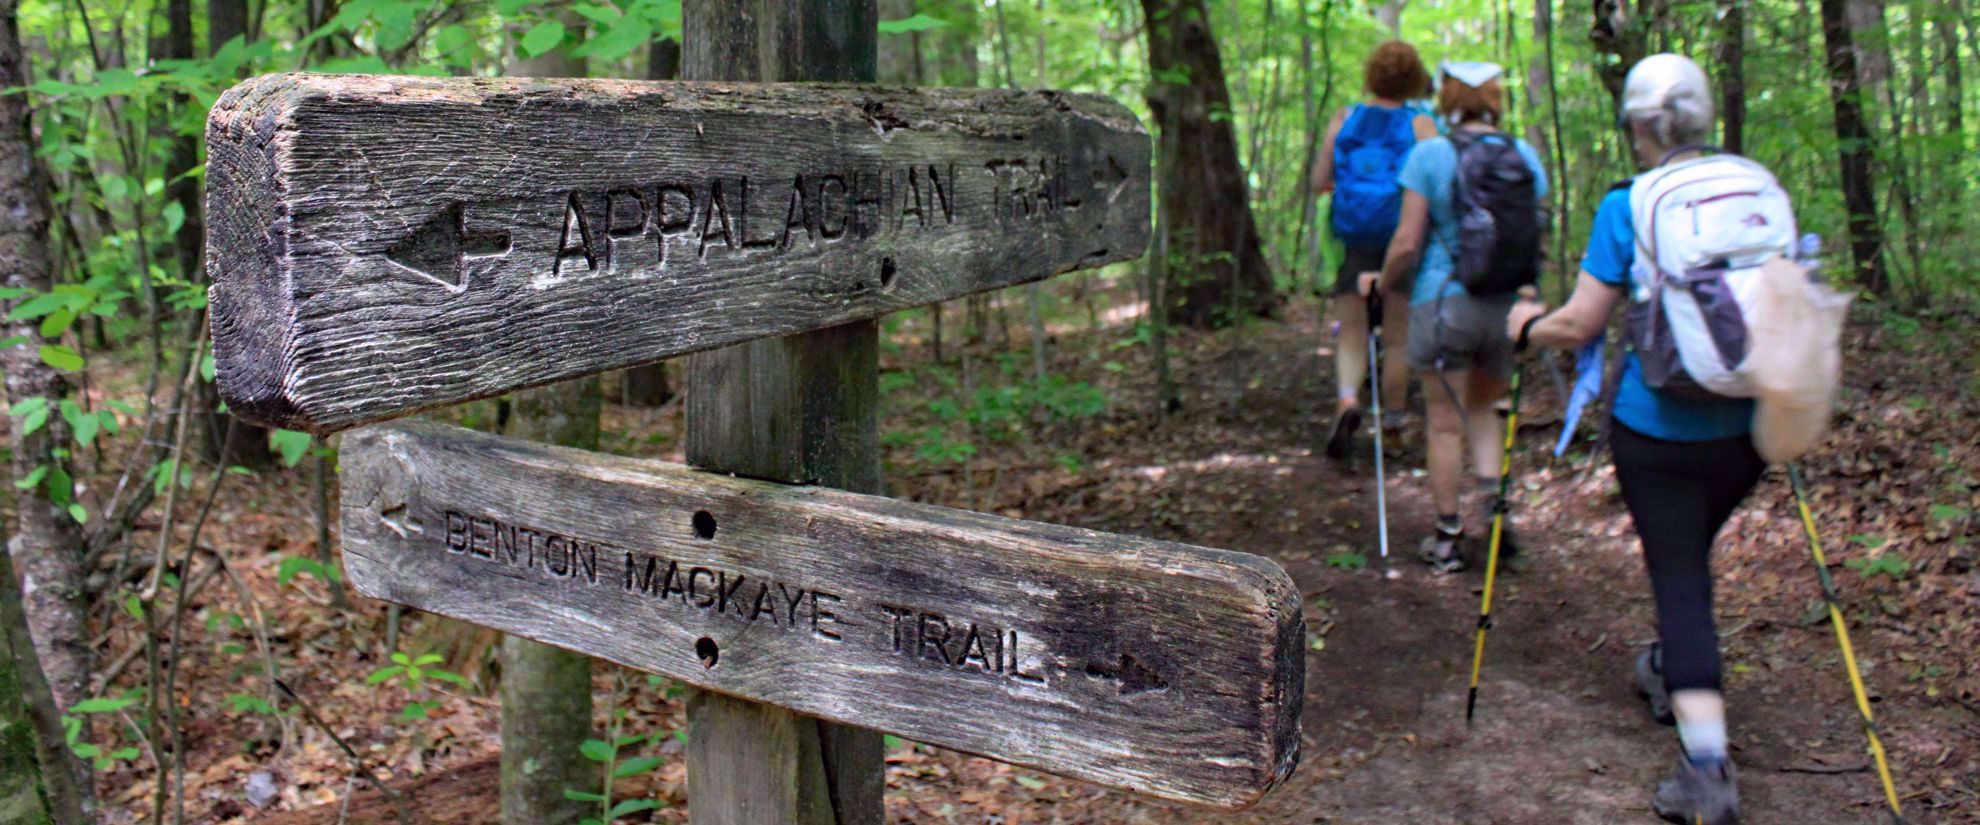 The Art of Mountain Hiking - the Appalachians